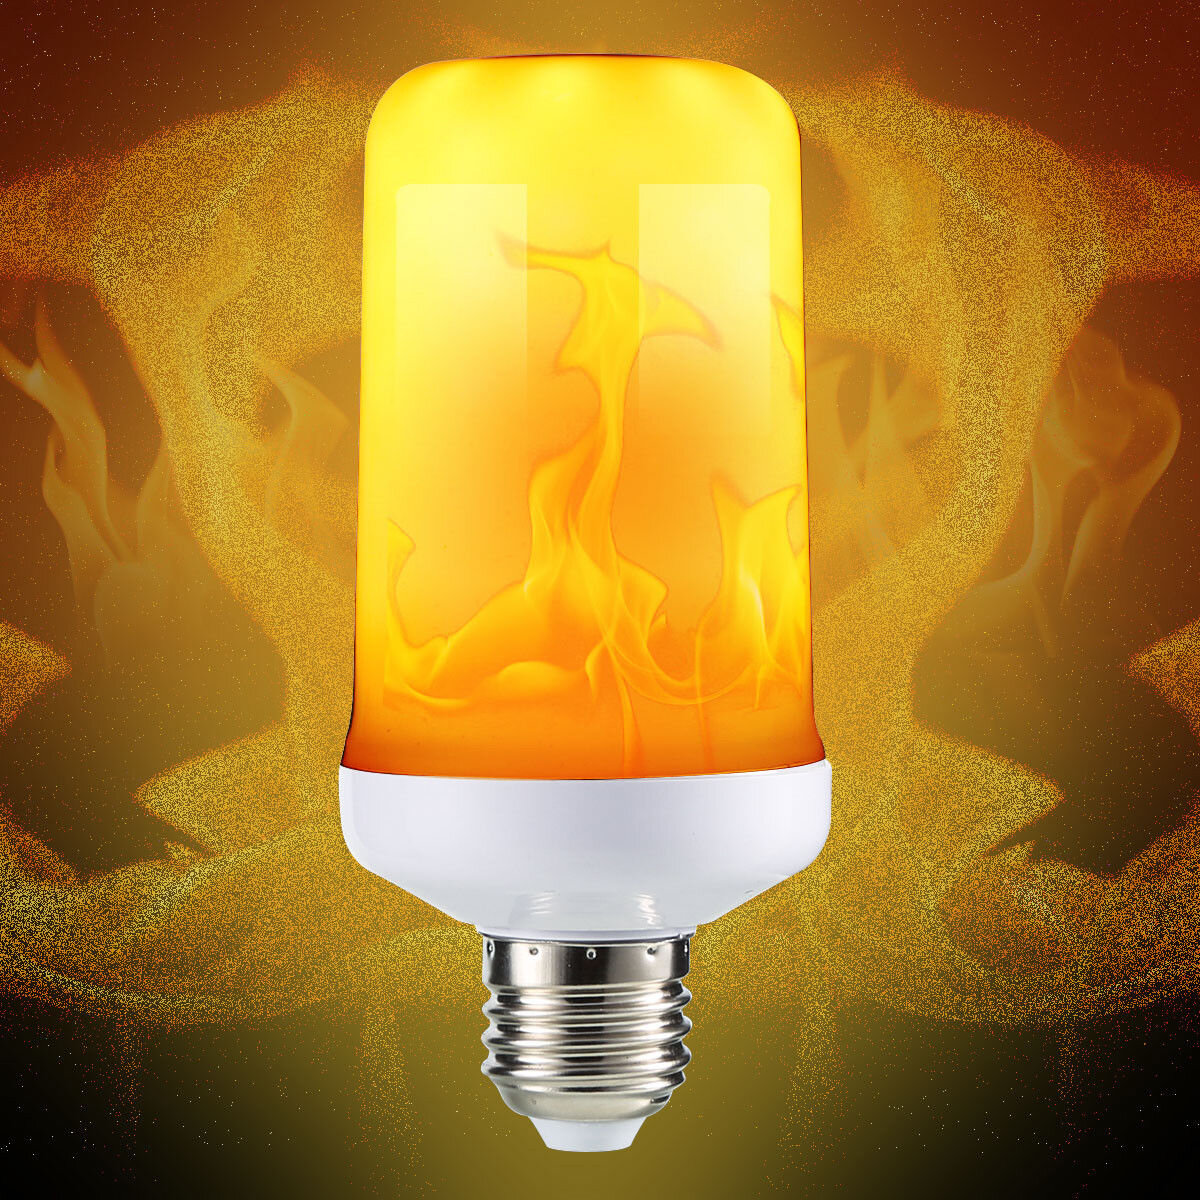 Led Flame Effect.E27 4 Modes Smd2835 Led Flame Effect Flickering Emulation Fire Light Bulb Decoration Lamp Ac85 265v